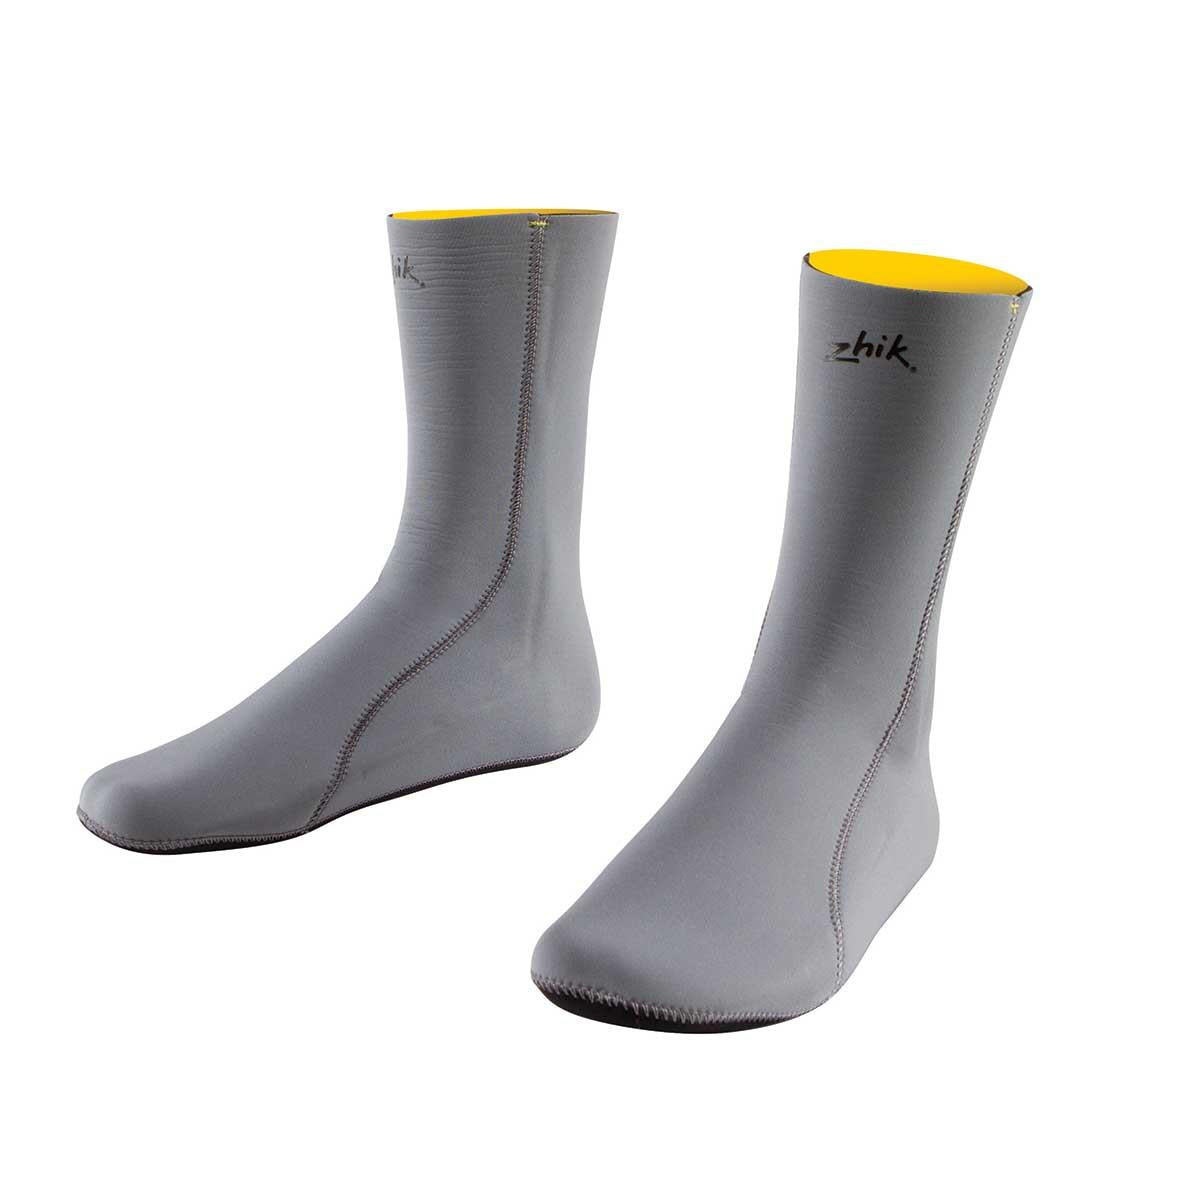 Zhik Superwarm Wetsuit Socks